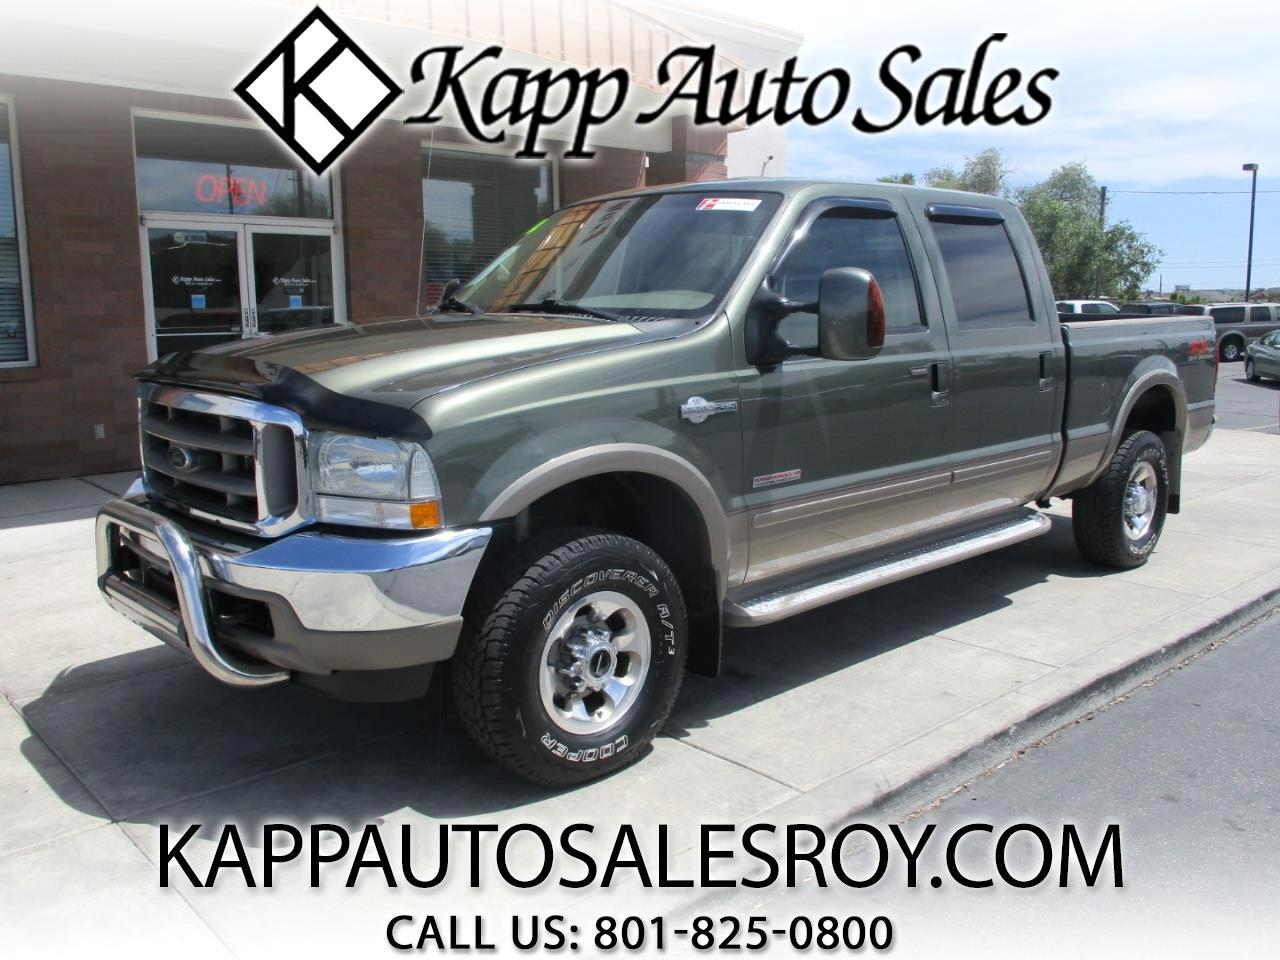 Kapp Auto Sales Roy >> Used 2004 Ford F-250 SD King Ranch Crew Cab 4WD for Sale ...